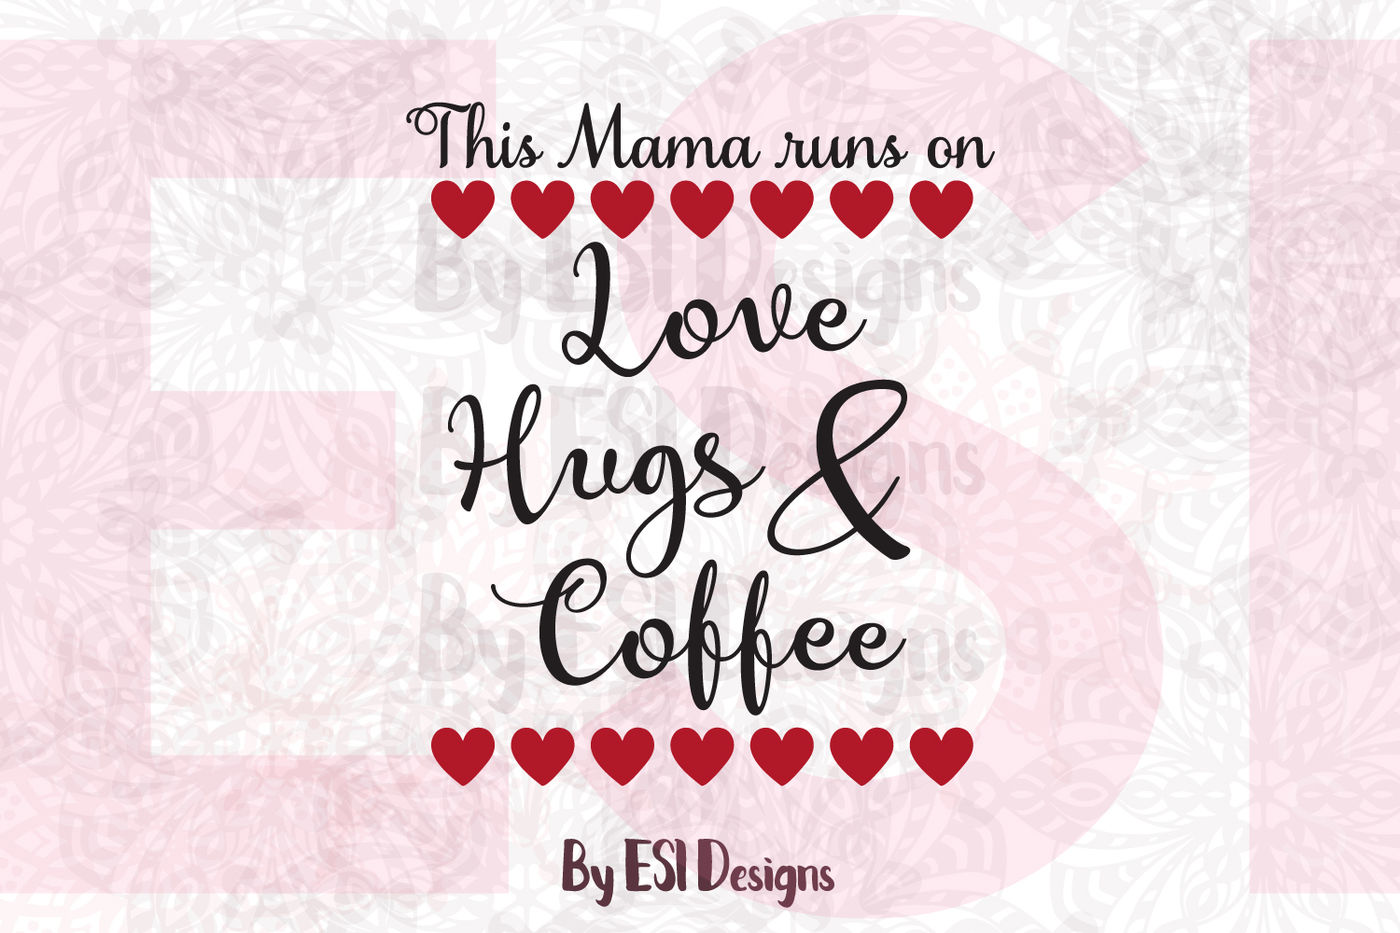 This Mama Runs On Love Hugs Coffee Svg Dxf Eps Png By Esi